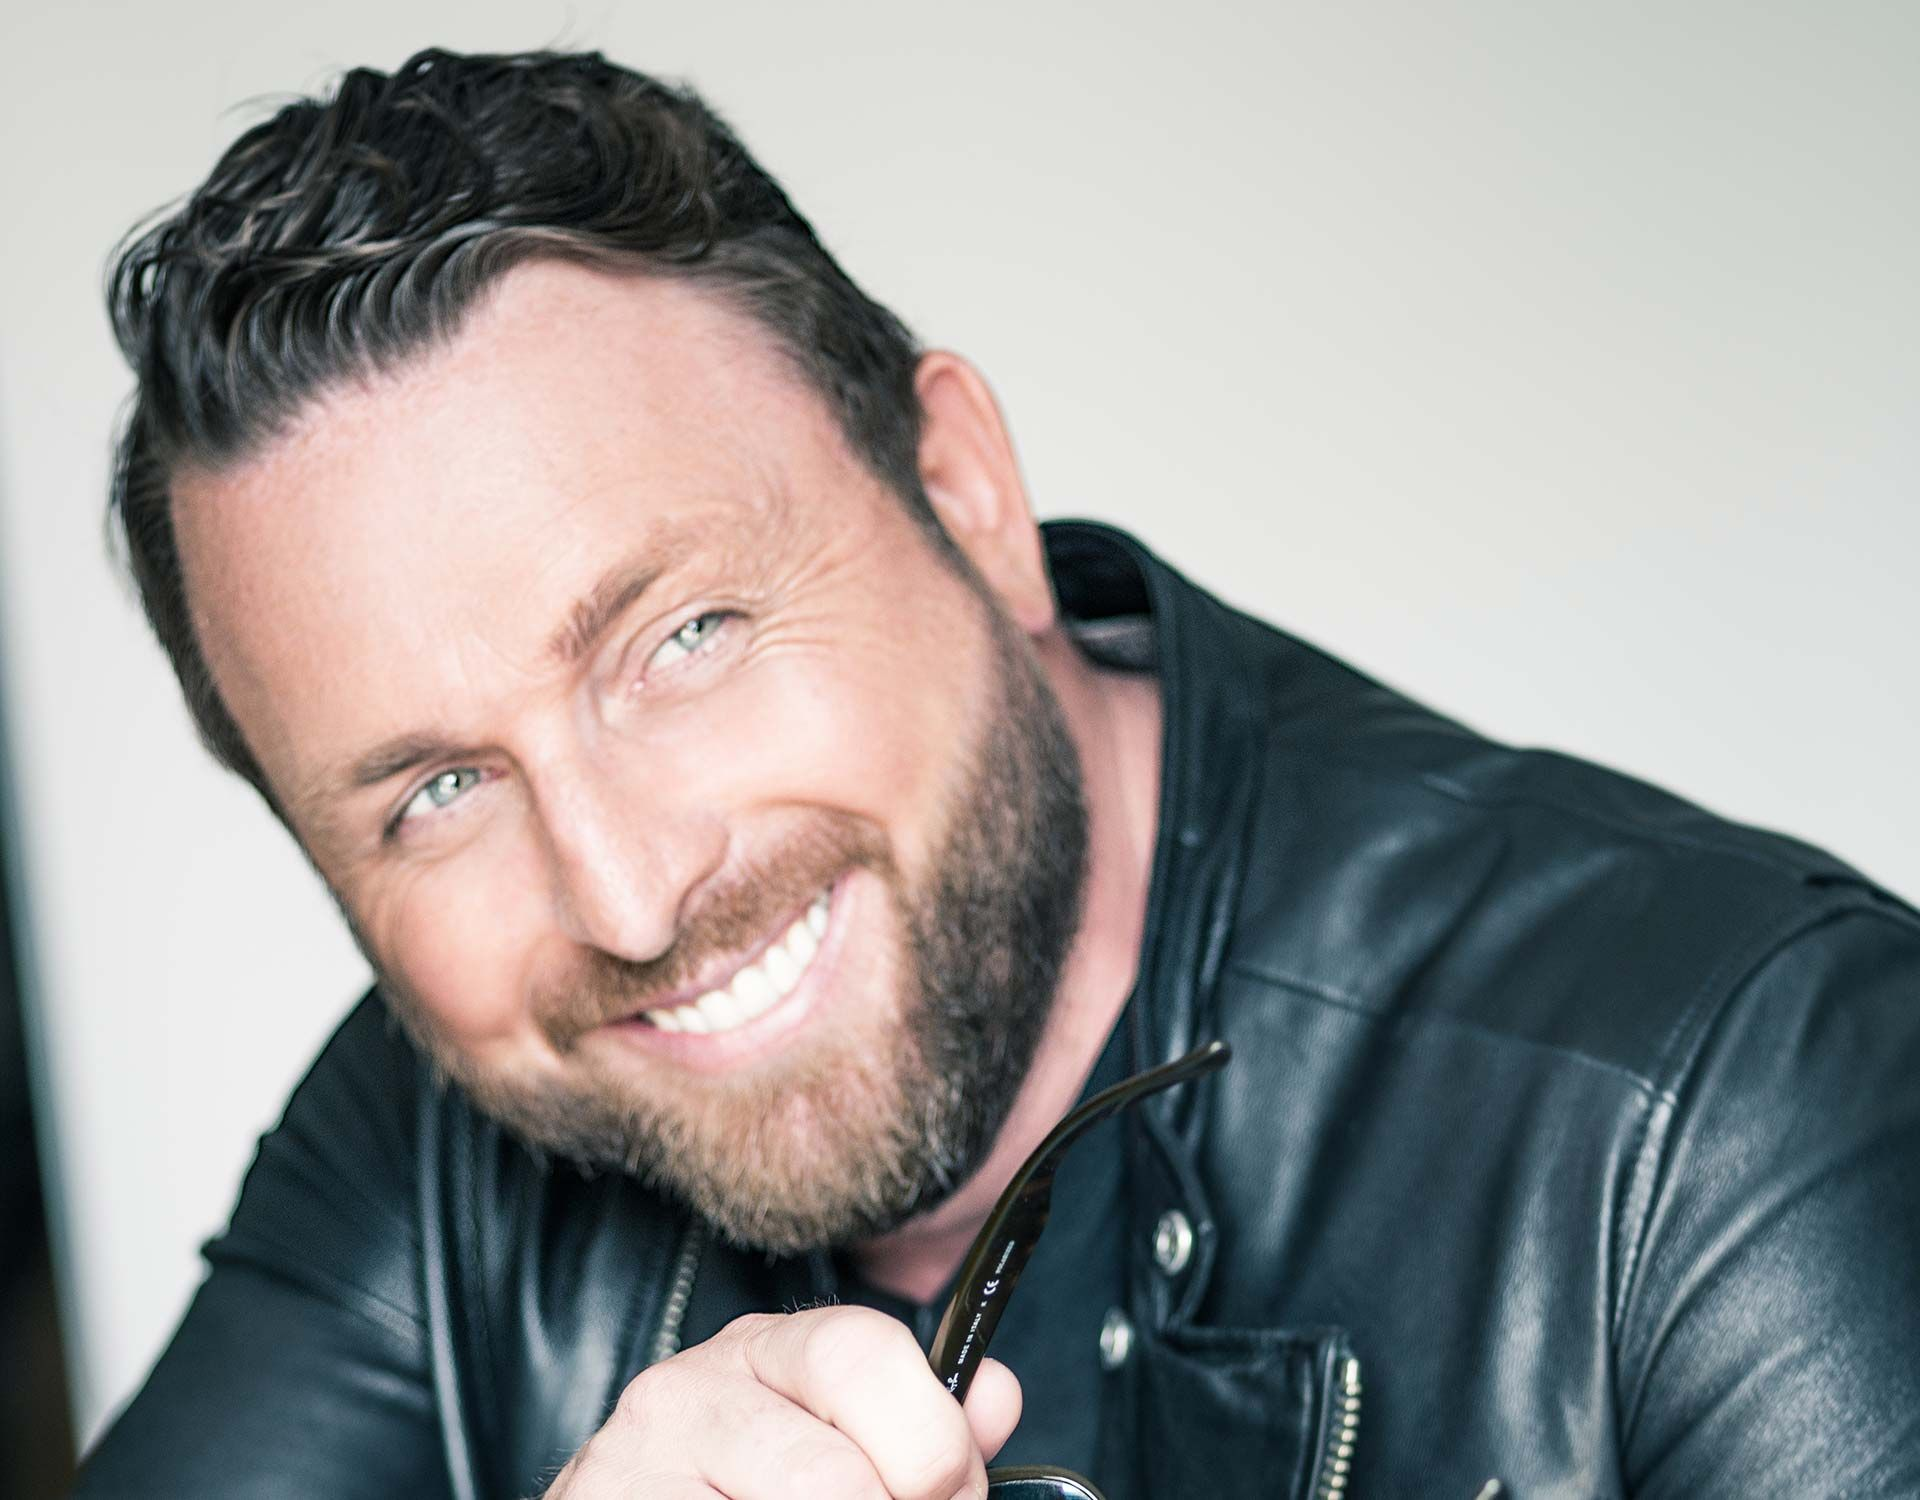 Johnny Reid Returns to the Abbotsford Centre this December with the 'My Kind of Christmas' Tour